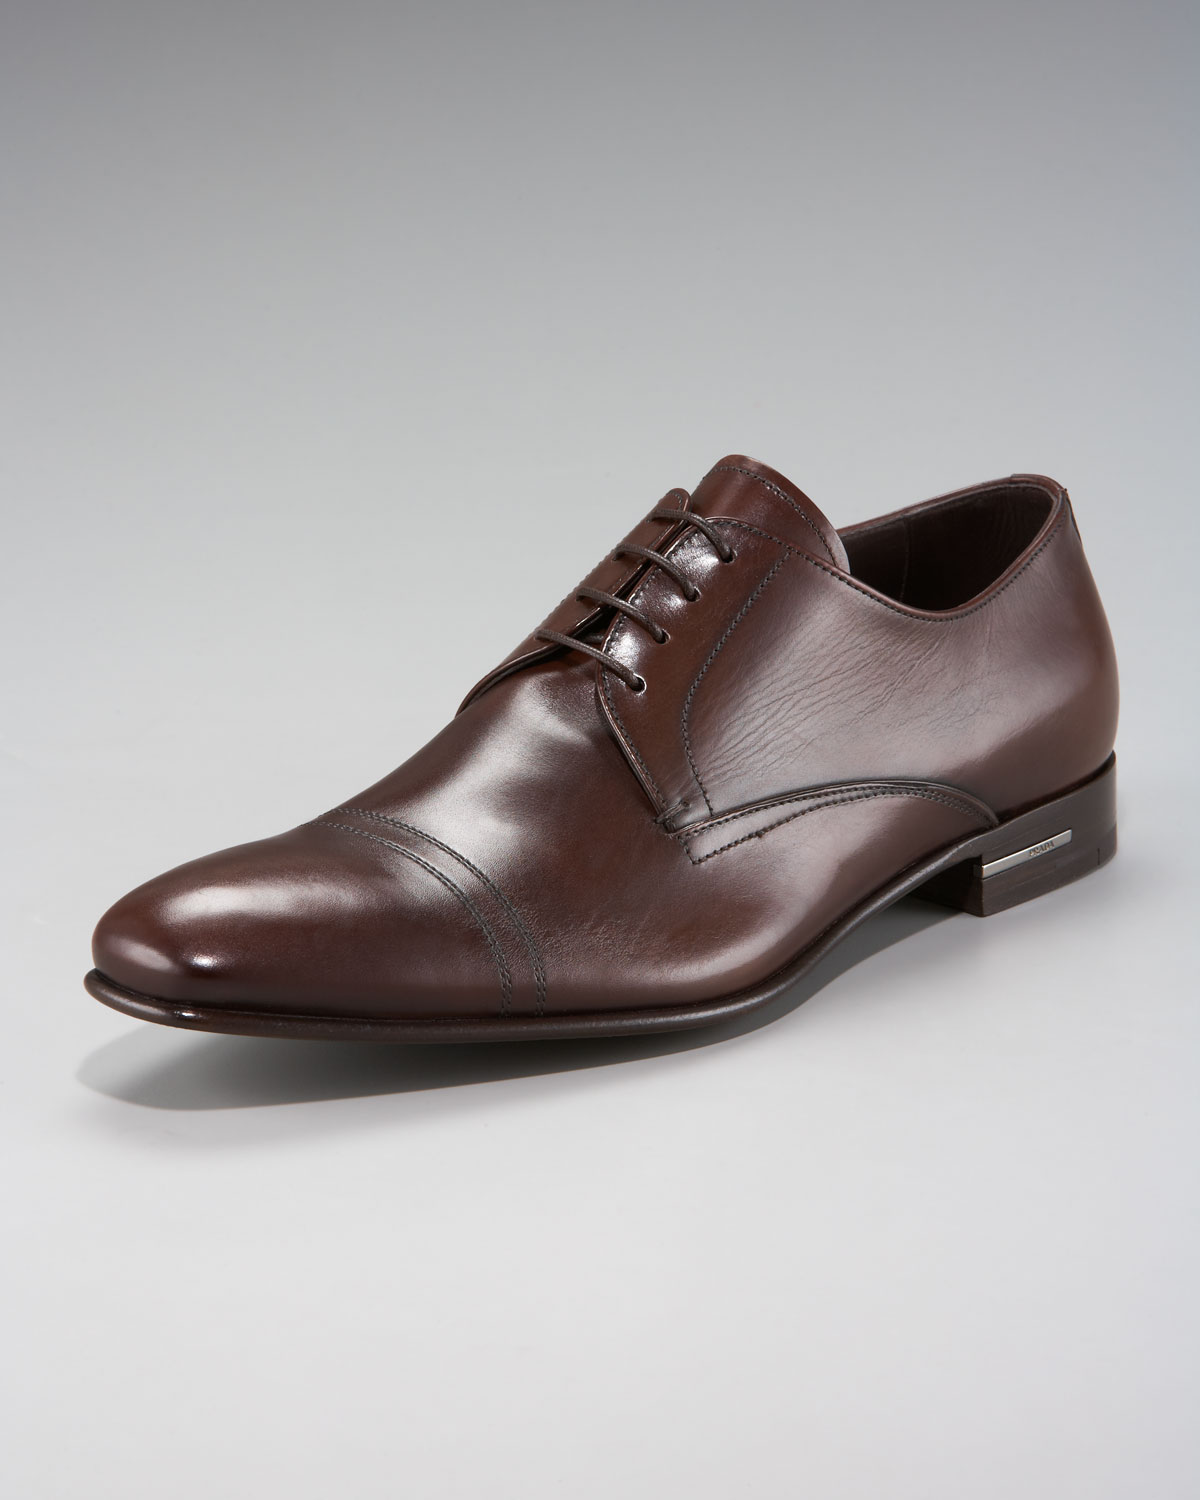 c138d18e4bb6 Prada Cap-toe Oxford in Brown for Men - Lyst